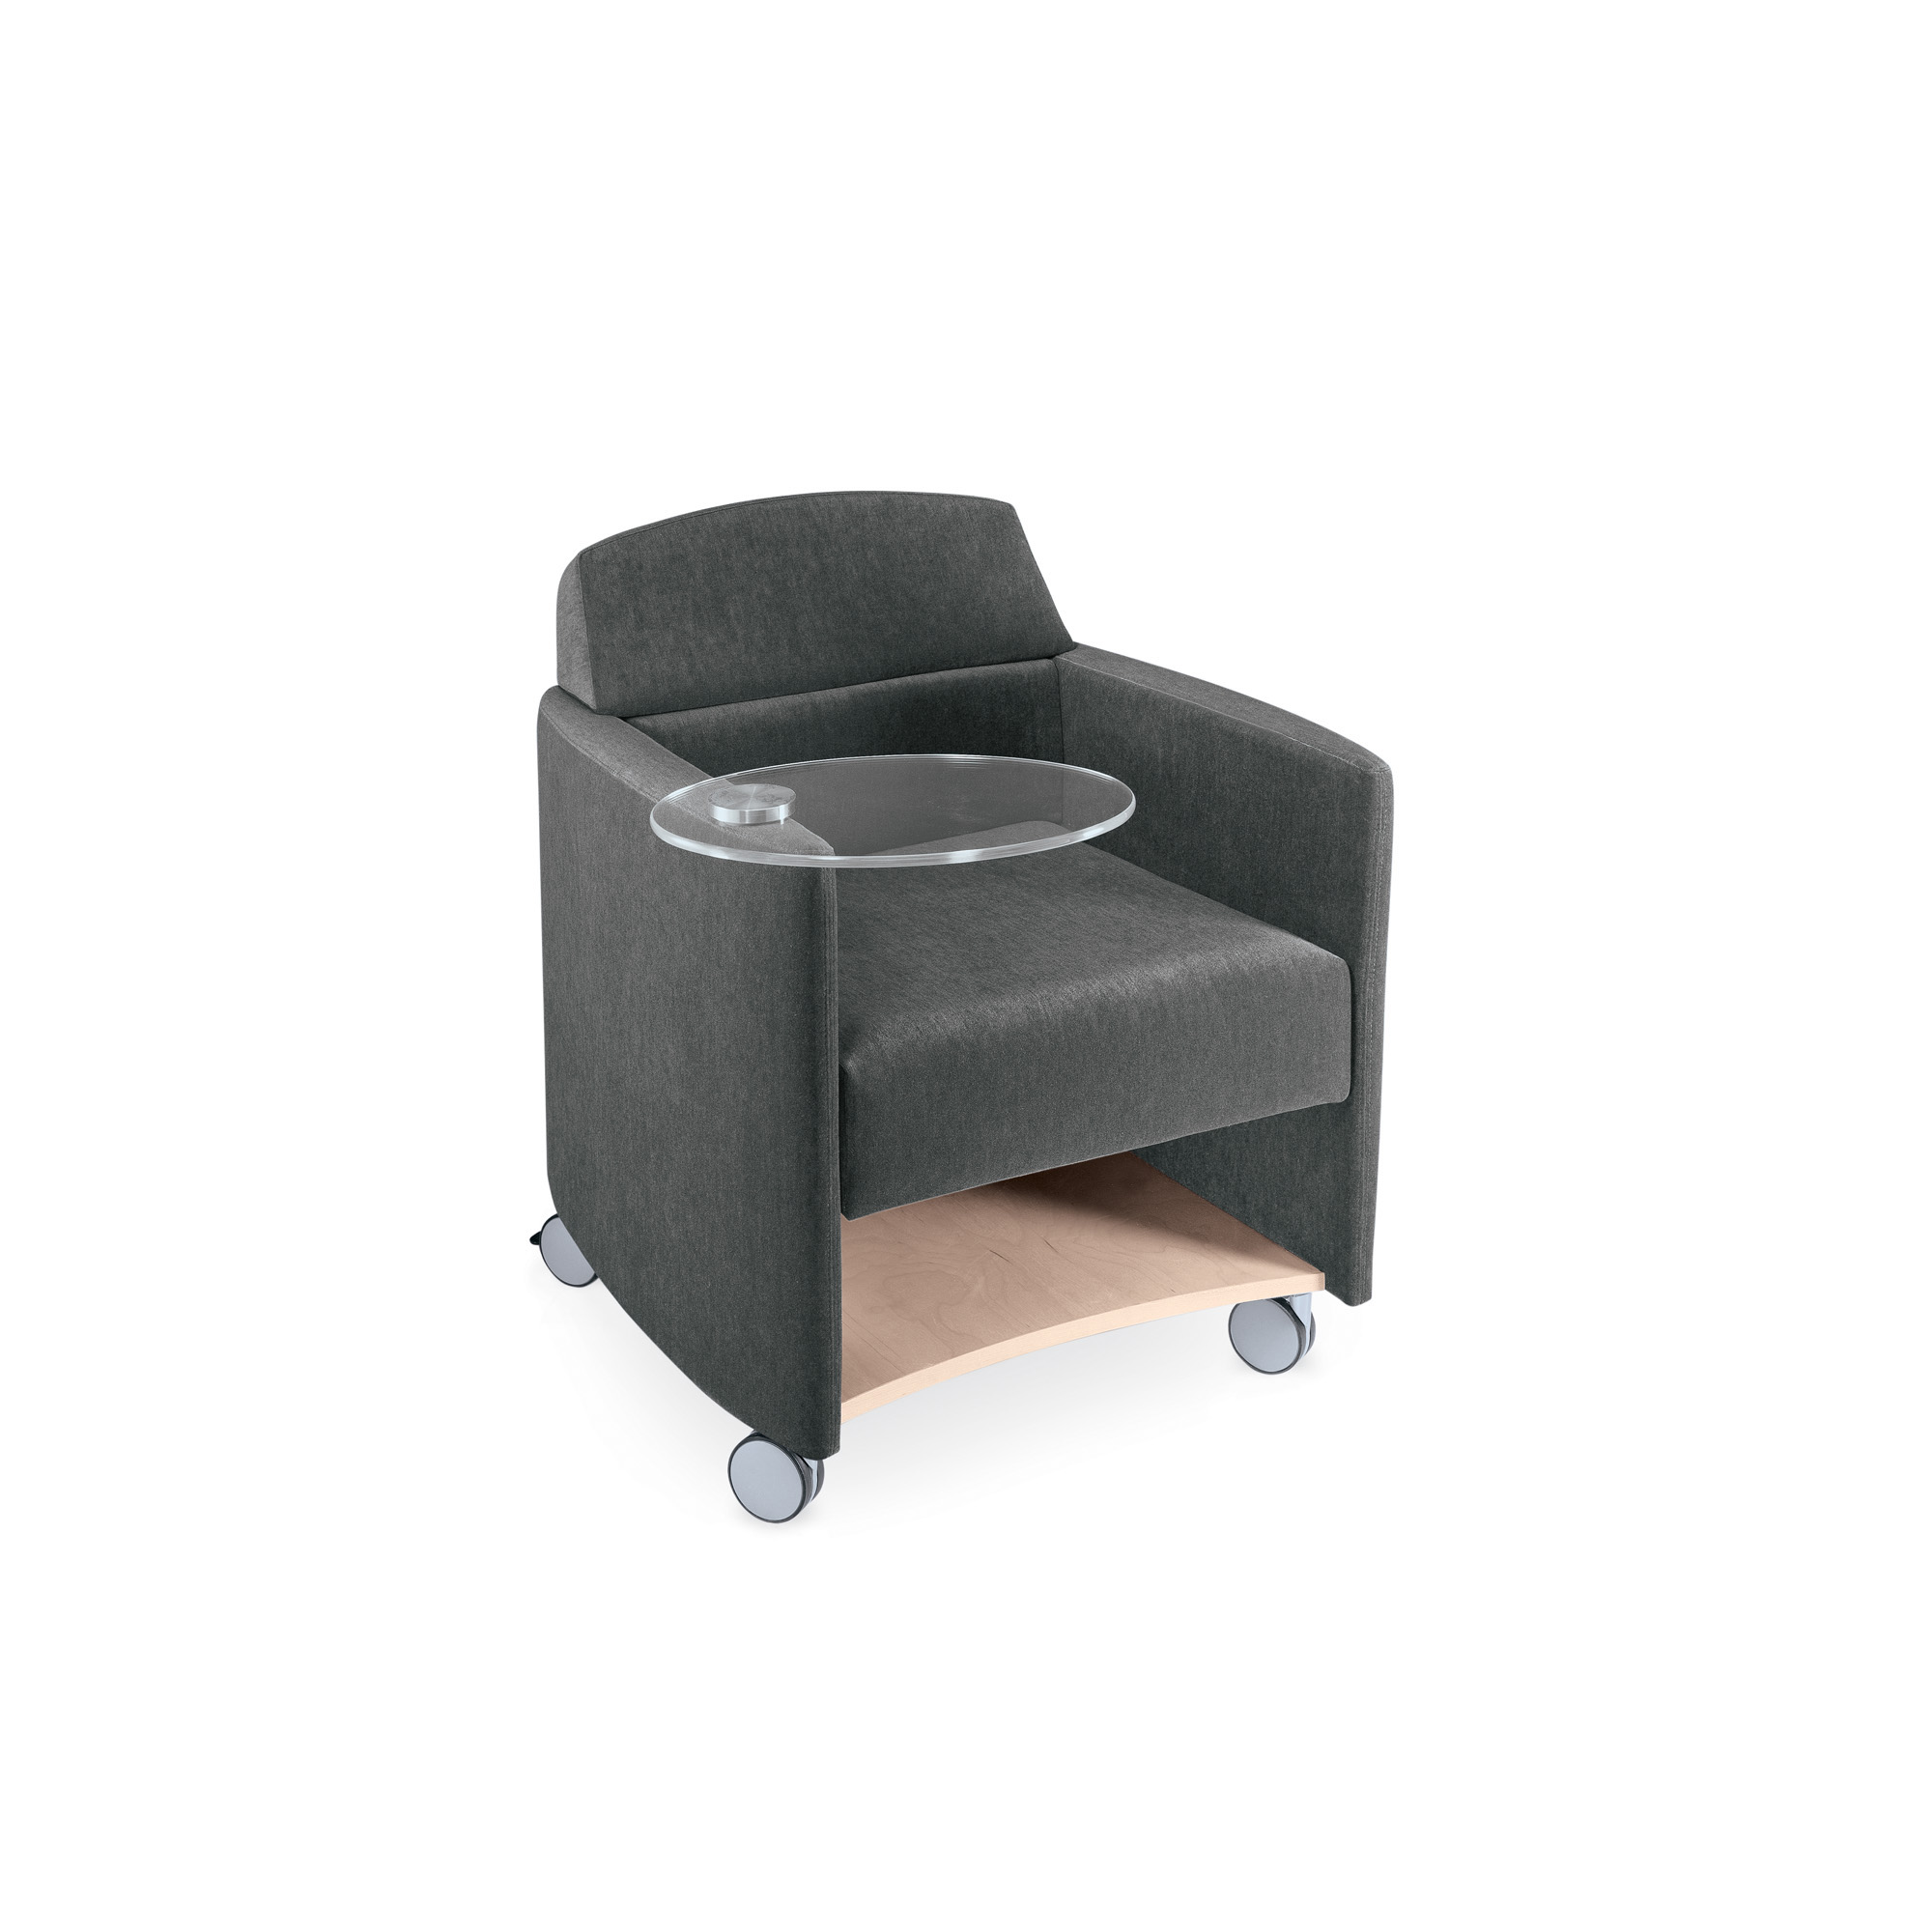 Krug Furniture Kitchener Seating Office Furniture Catelog